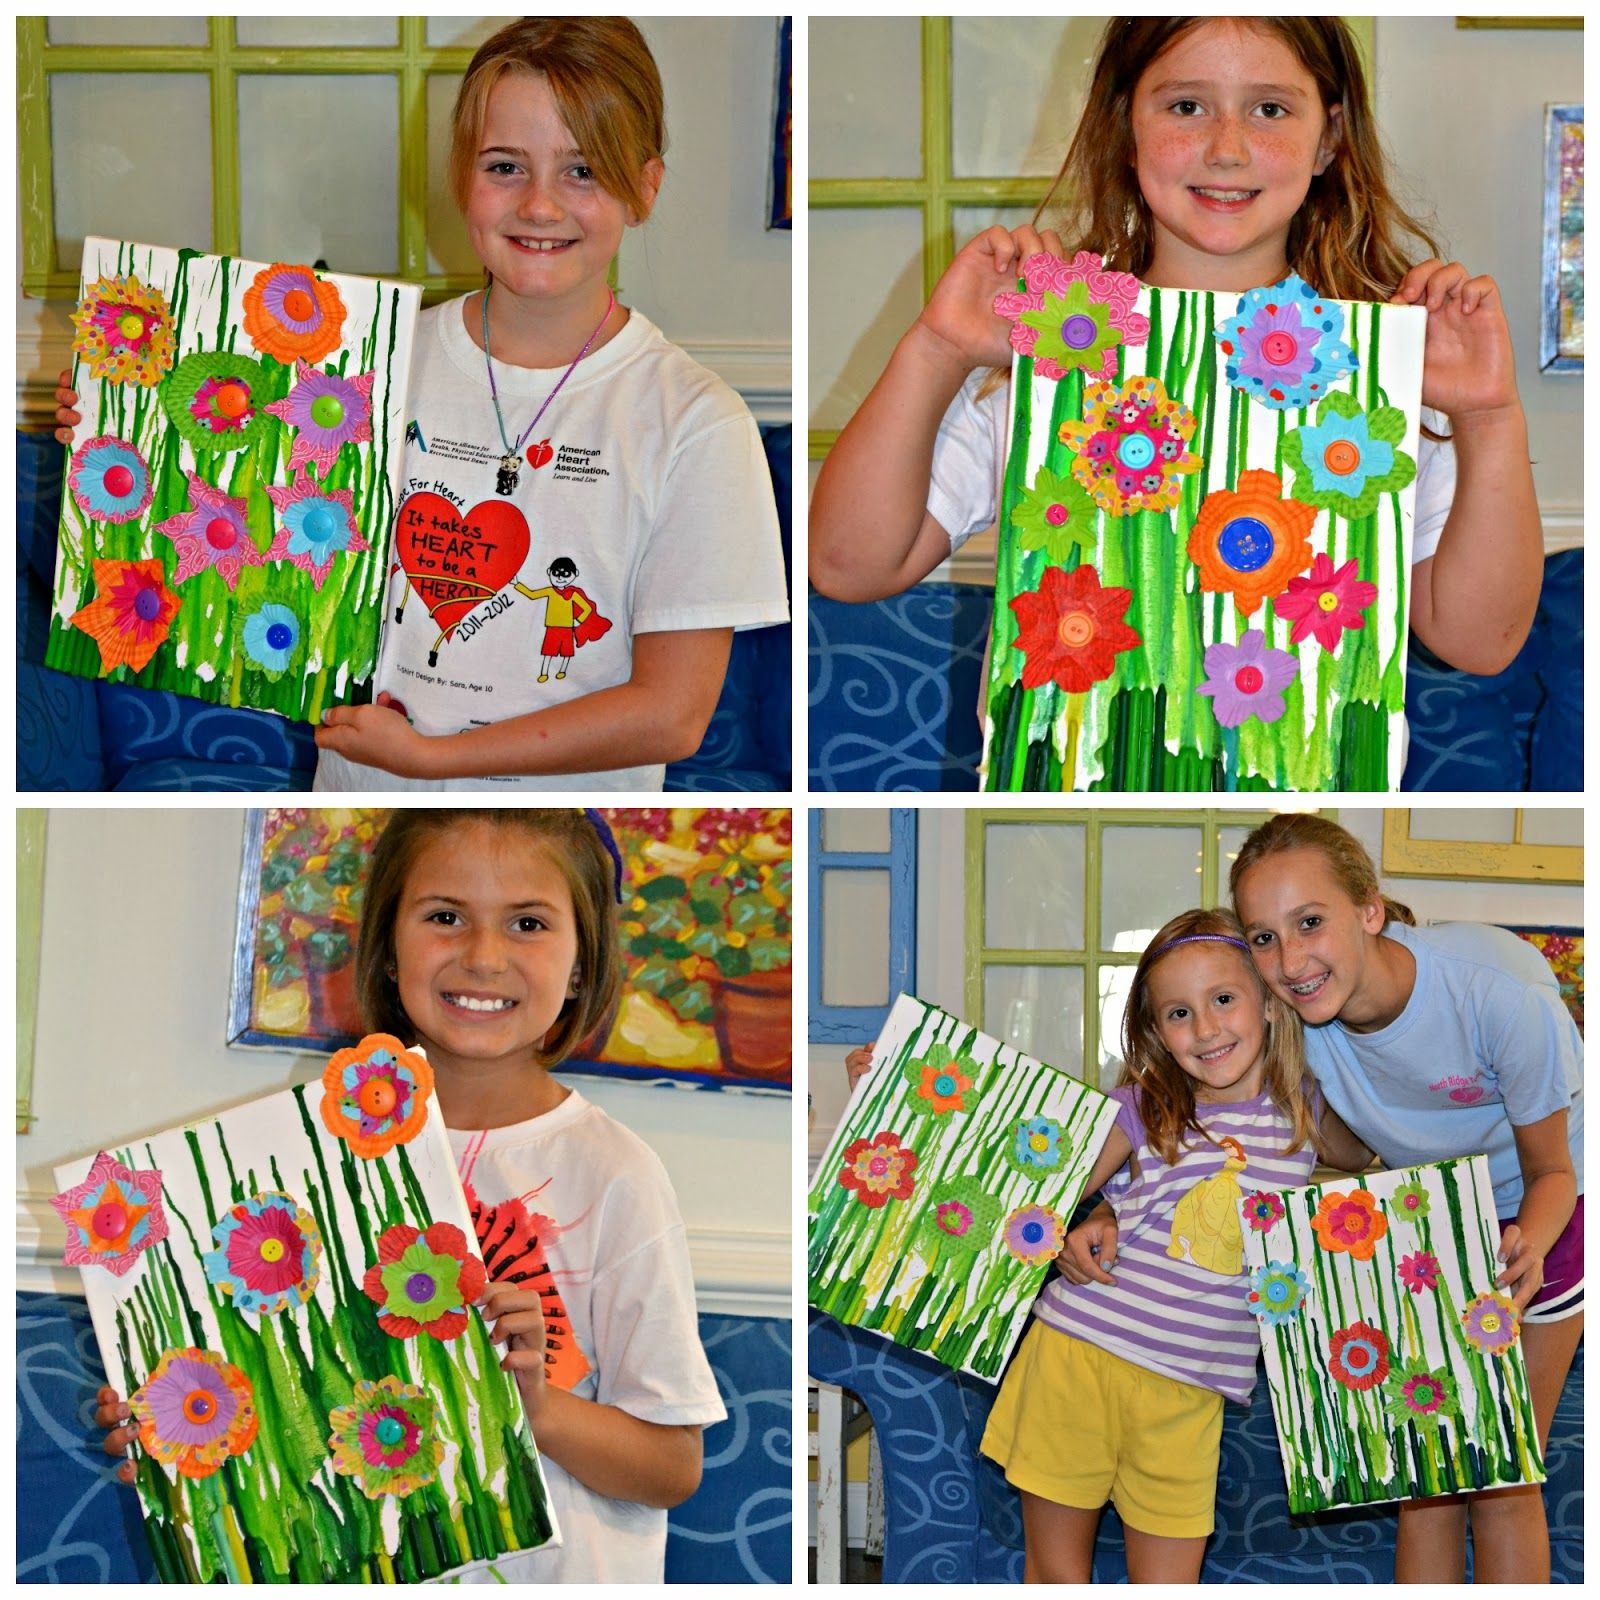 Delightful Arts And Crafts Ideas For Kids Summer Camp Part - 12: The Intentional Home: 2 Weeks Of Craft Camp For Girls This Summer!